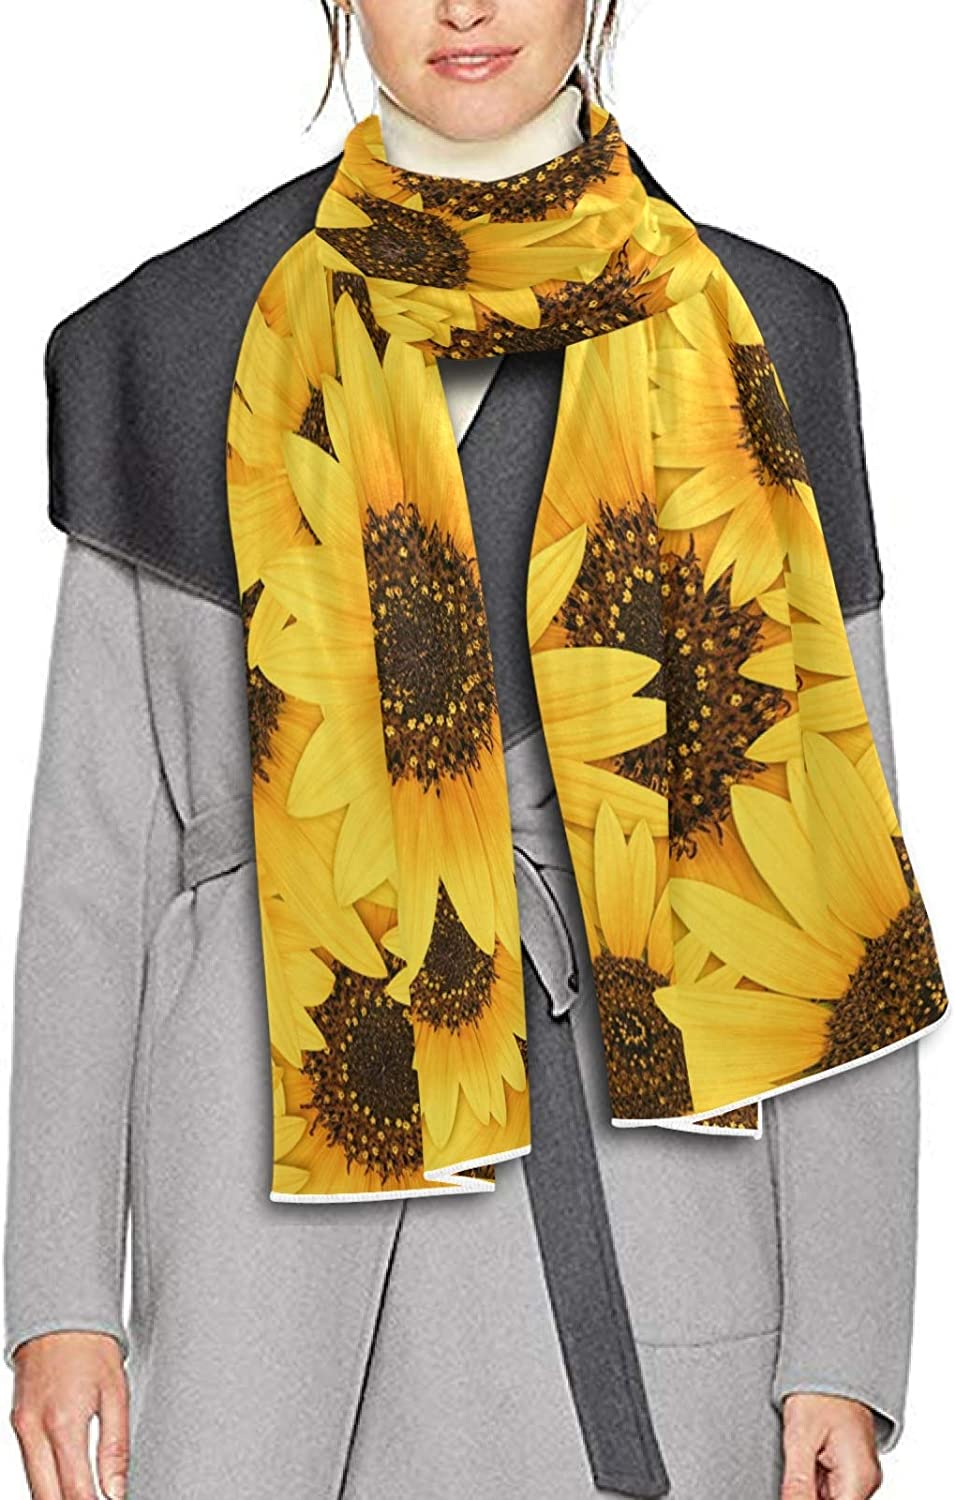 Scarf for Women and Men Wild Sunflower Blossom Blanket Shawl Scarves Wraps Soft thick Winter Oversized Scarves Lightweight